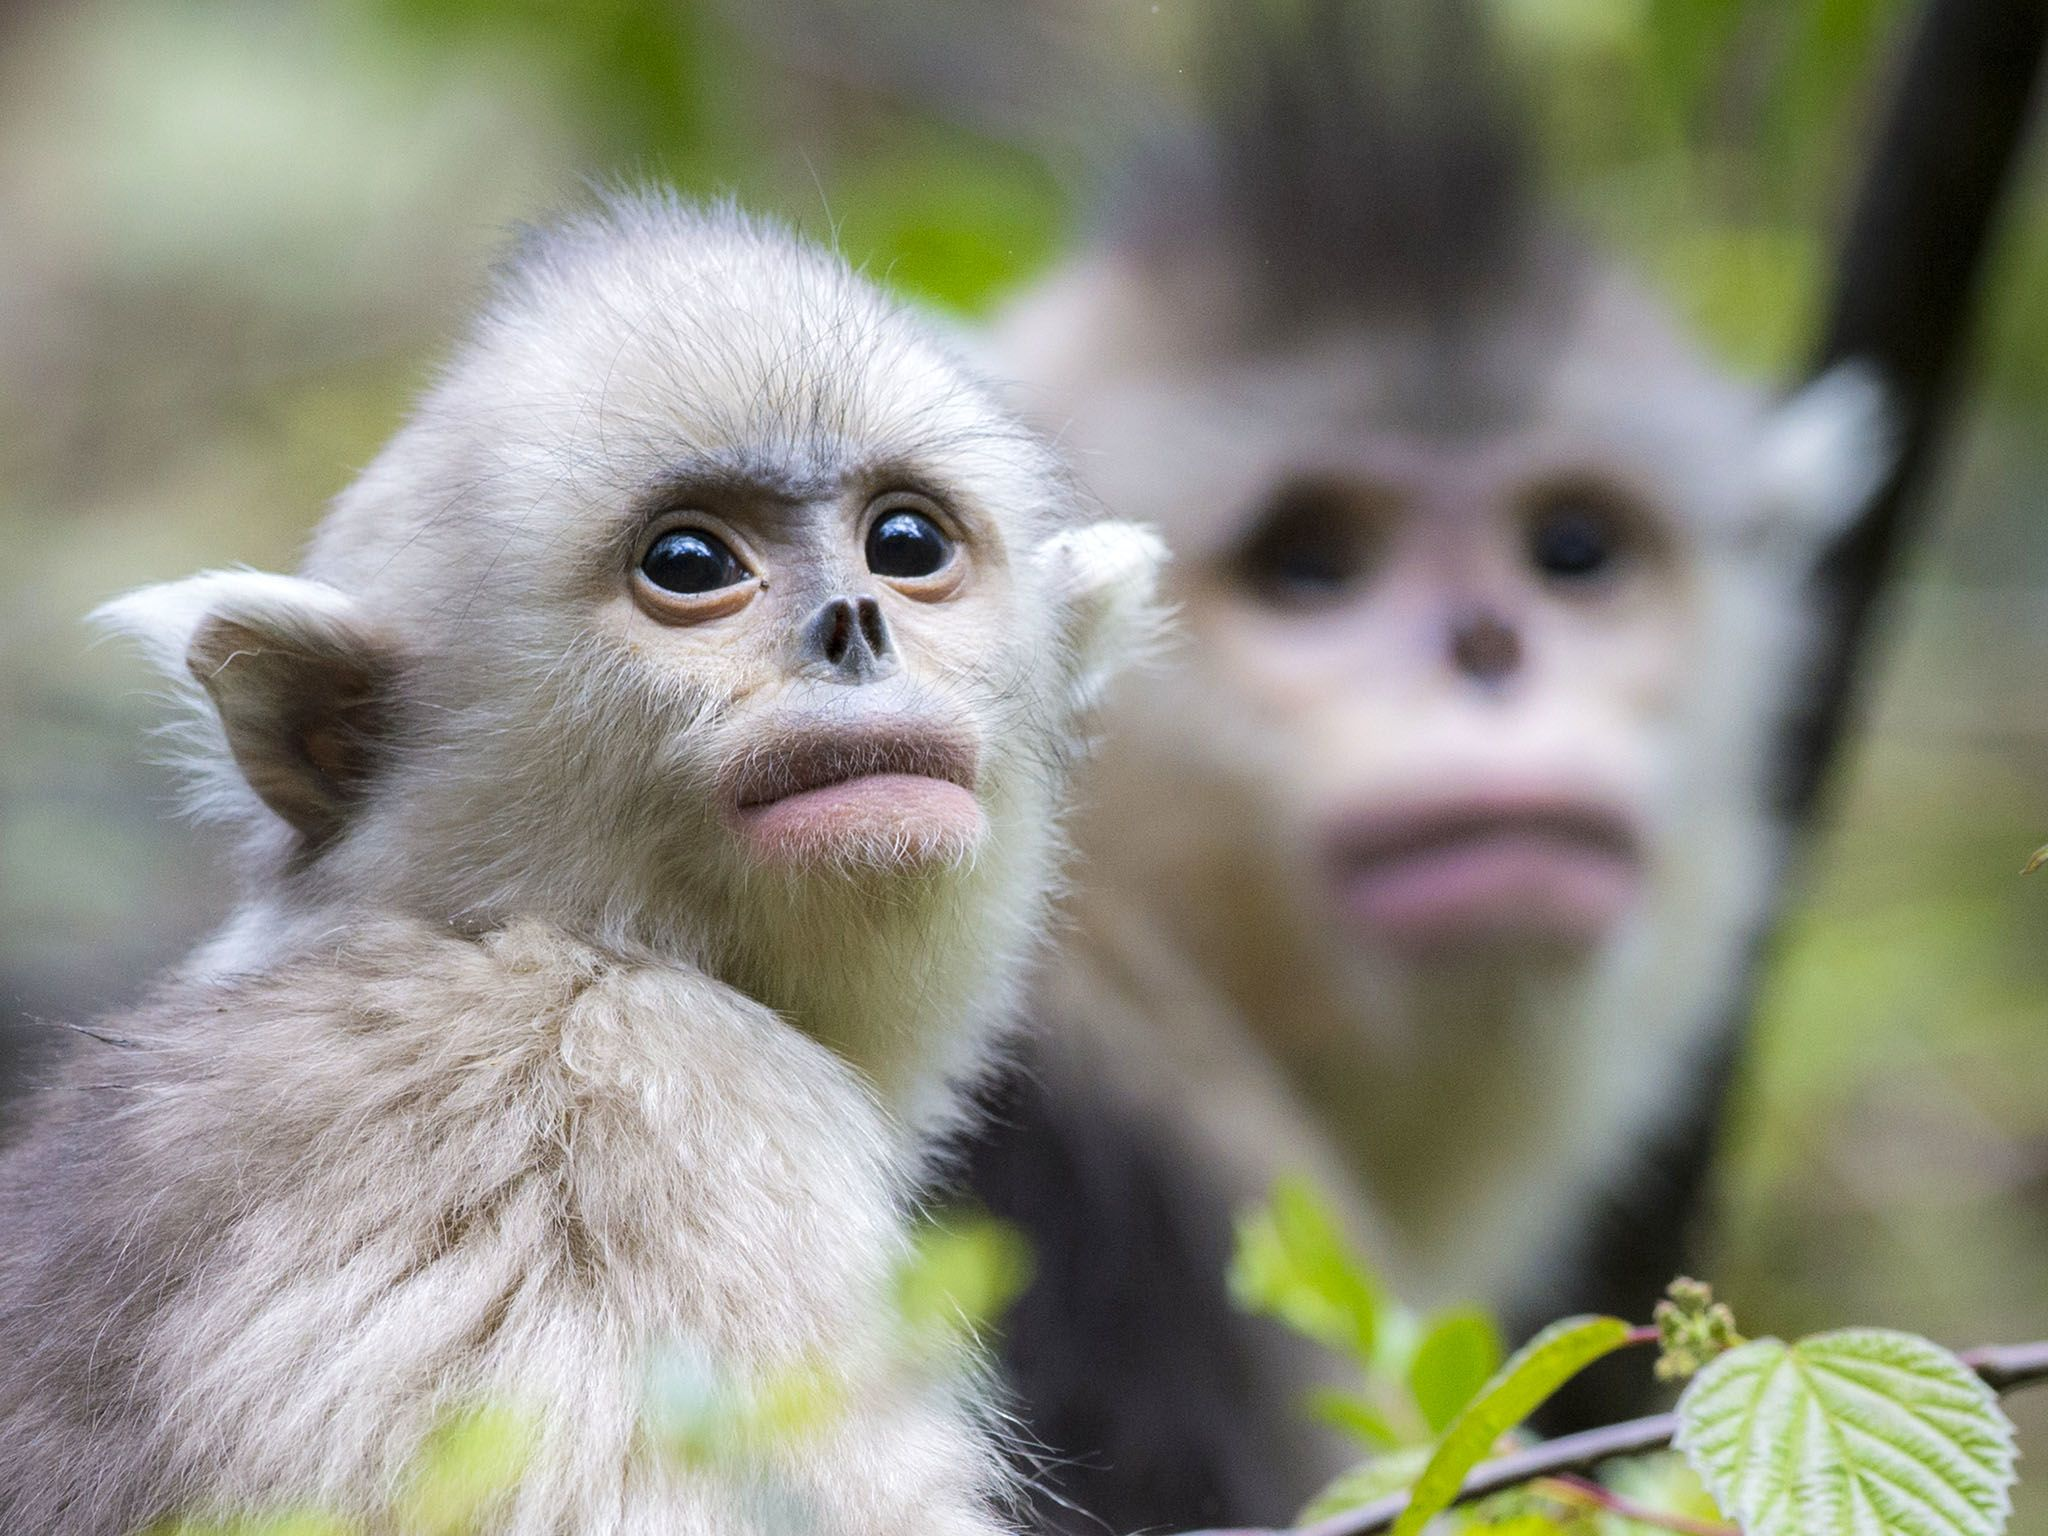 Yearling and mother snub-nosed monkey, Rhinopithecus bieti. This image is from Snub-Nosed Monkeys. [Фото дня - Ноябрь 2015]